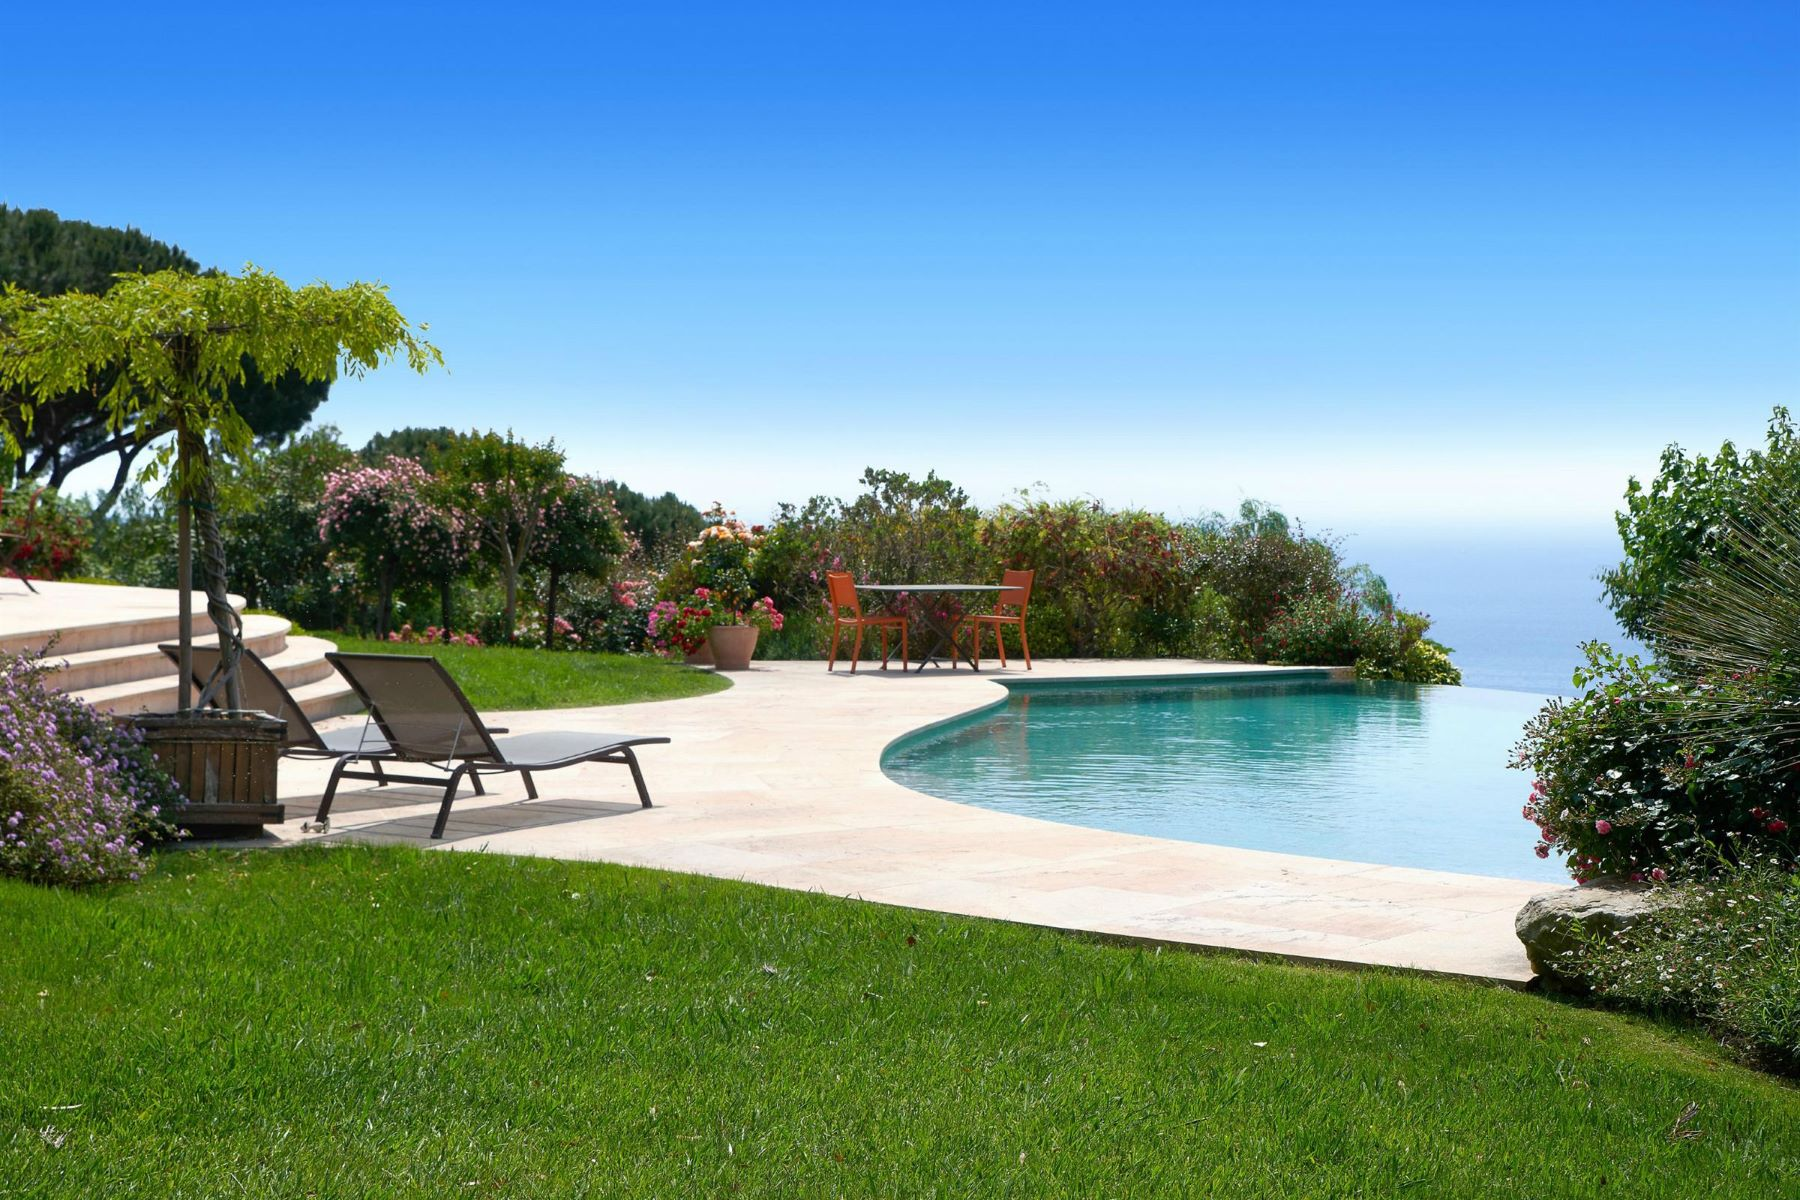 Single Family Home for Sale at Cannes - spacious villa - panoramic sea views Cannes, Provence-Alpes-Cote D'Azur, 06400 France